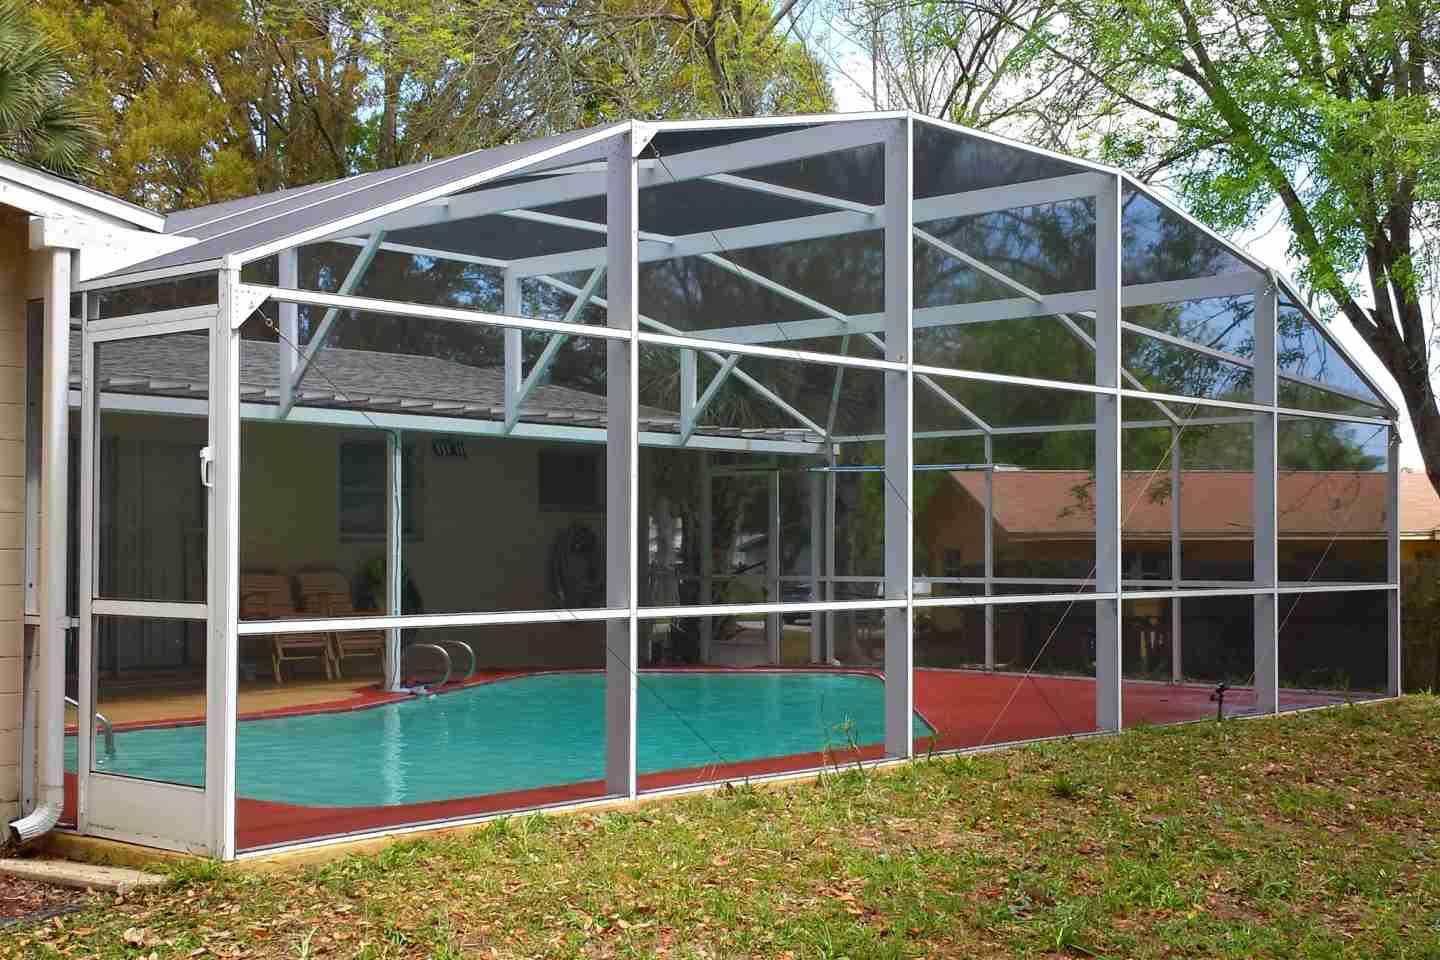 02-after-pressure-clean-pool-enclosure.jpg